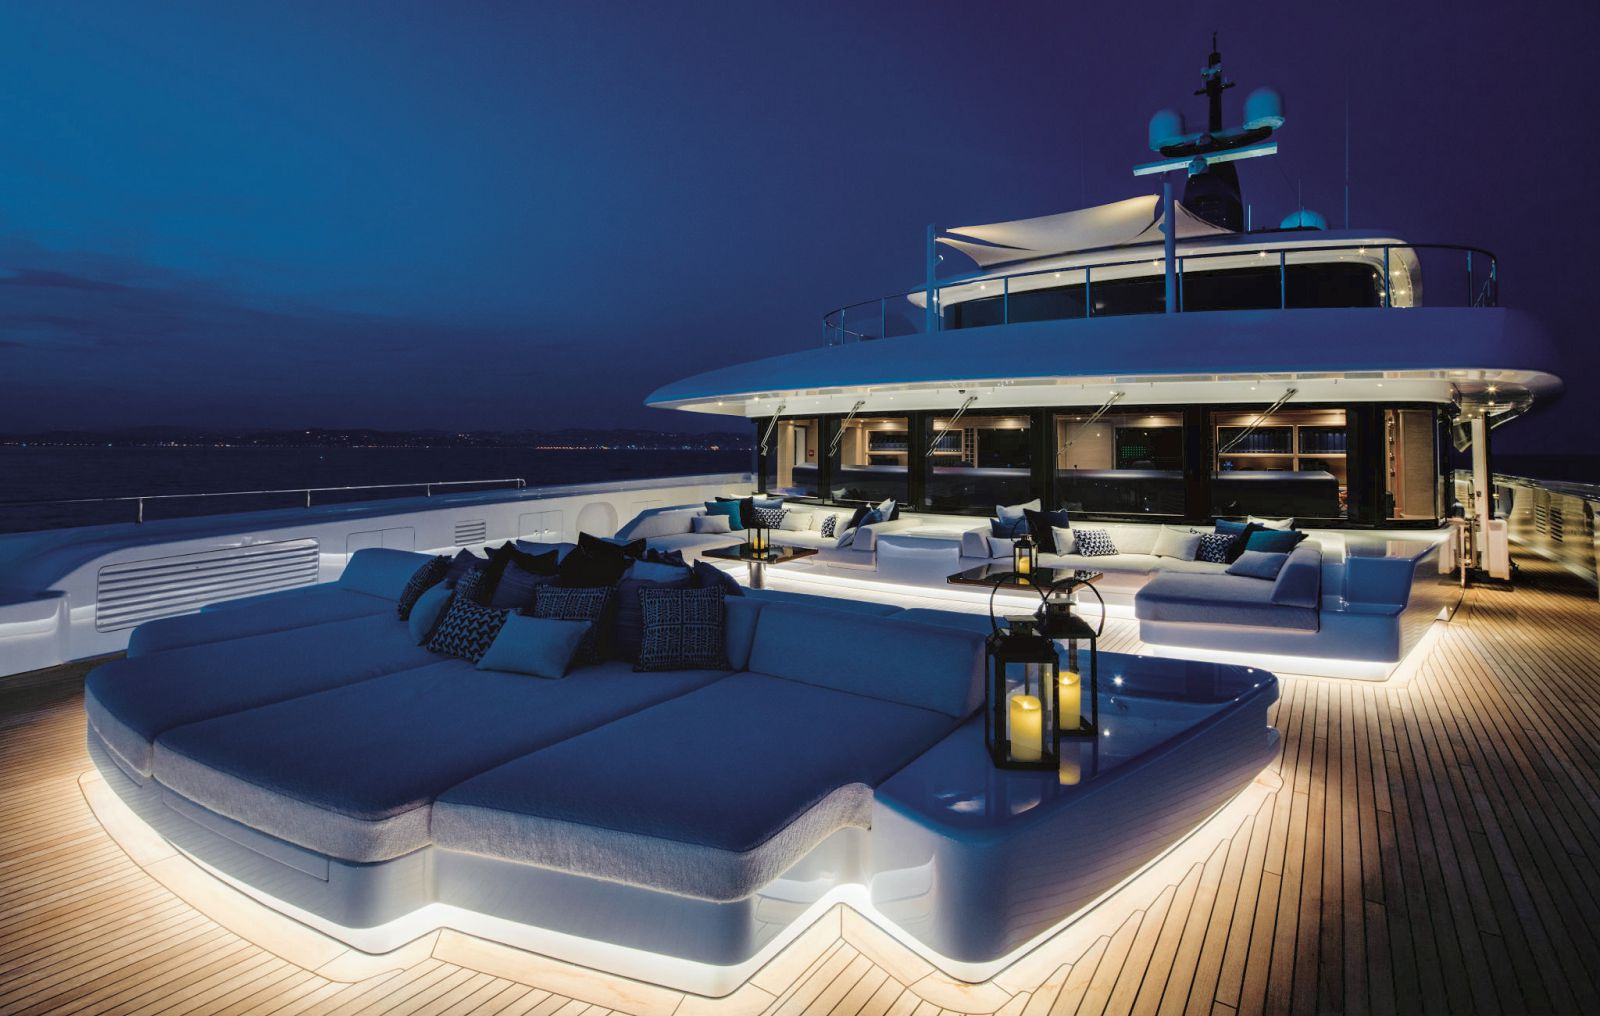 Exterior of the bow at night with the deck lights lighting up the lounging aera. >